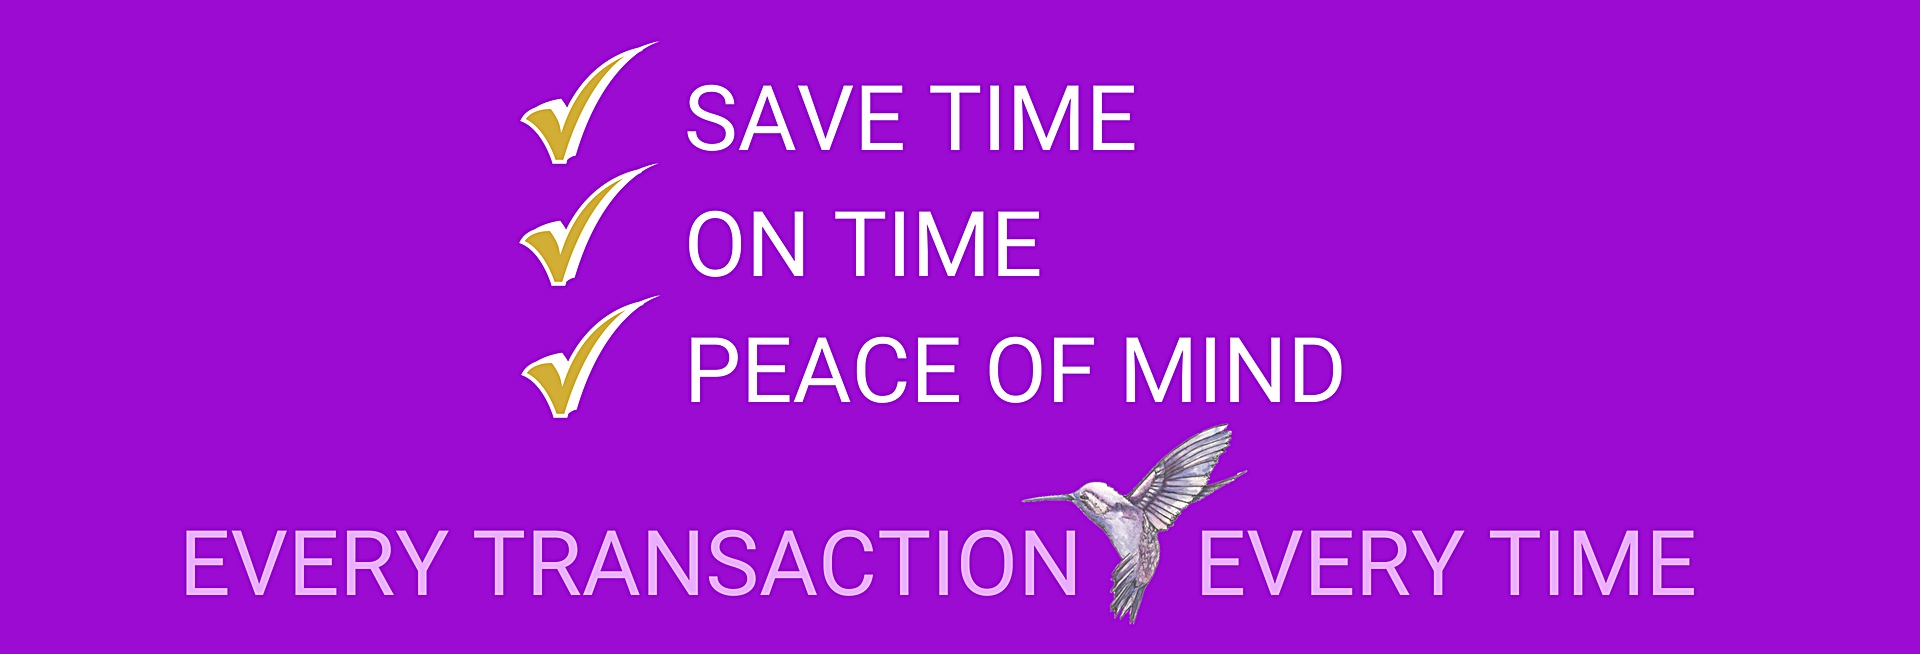 CeCe Hampton Enterprises in Fort Mill, SC, saves time, on time, peace of mind for every real estate transaction, every time.